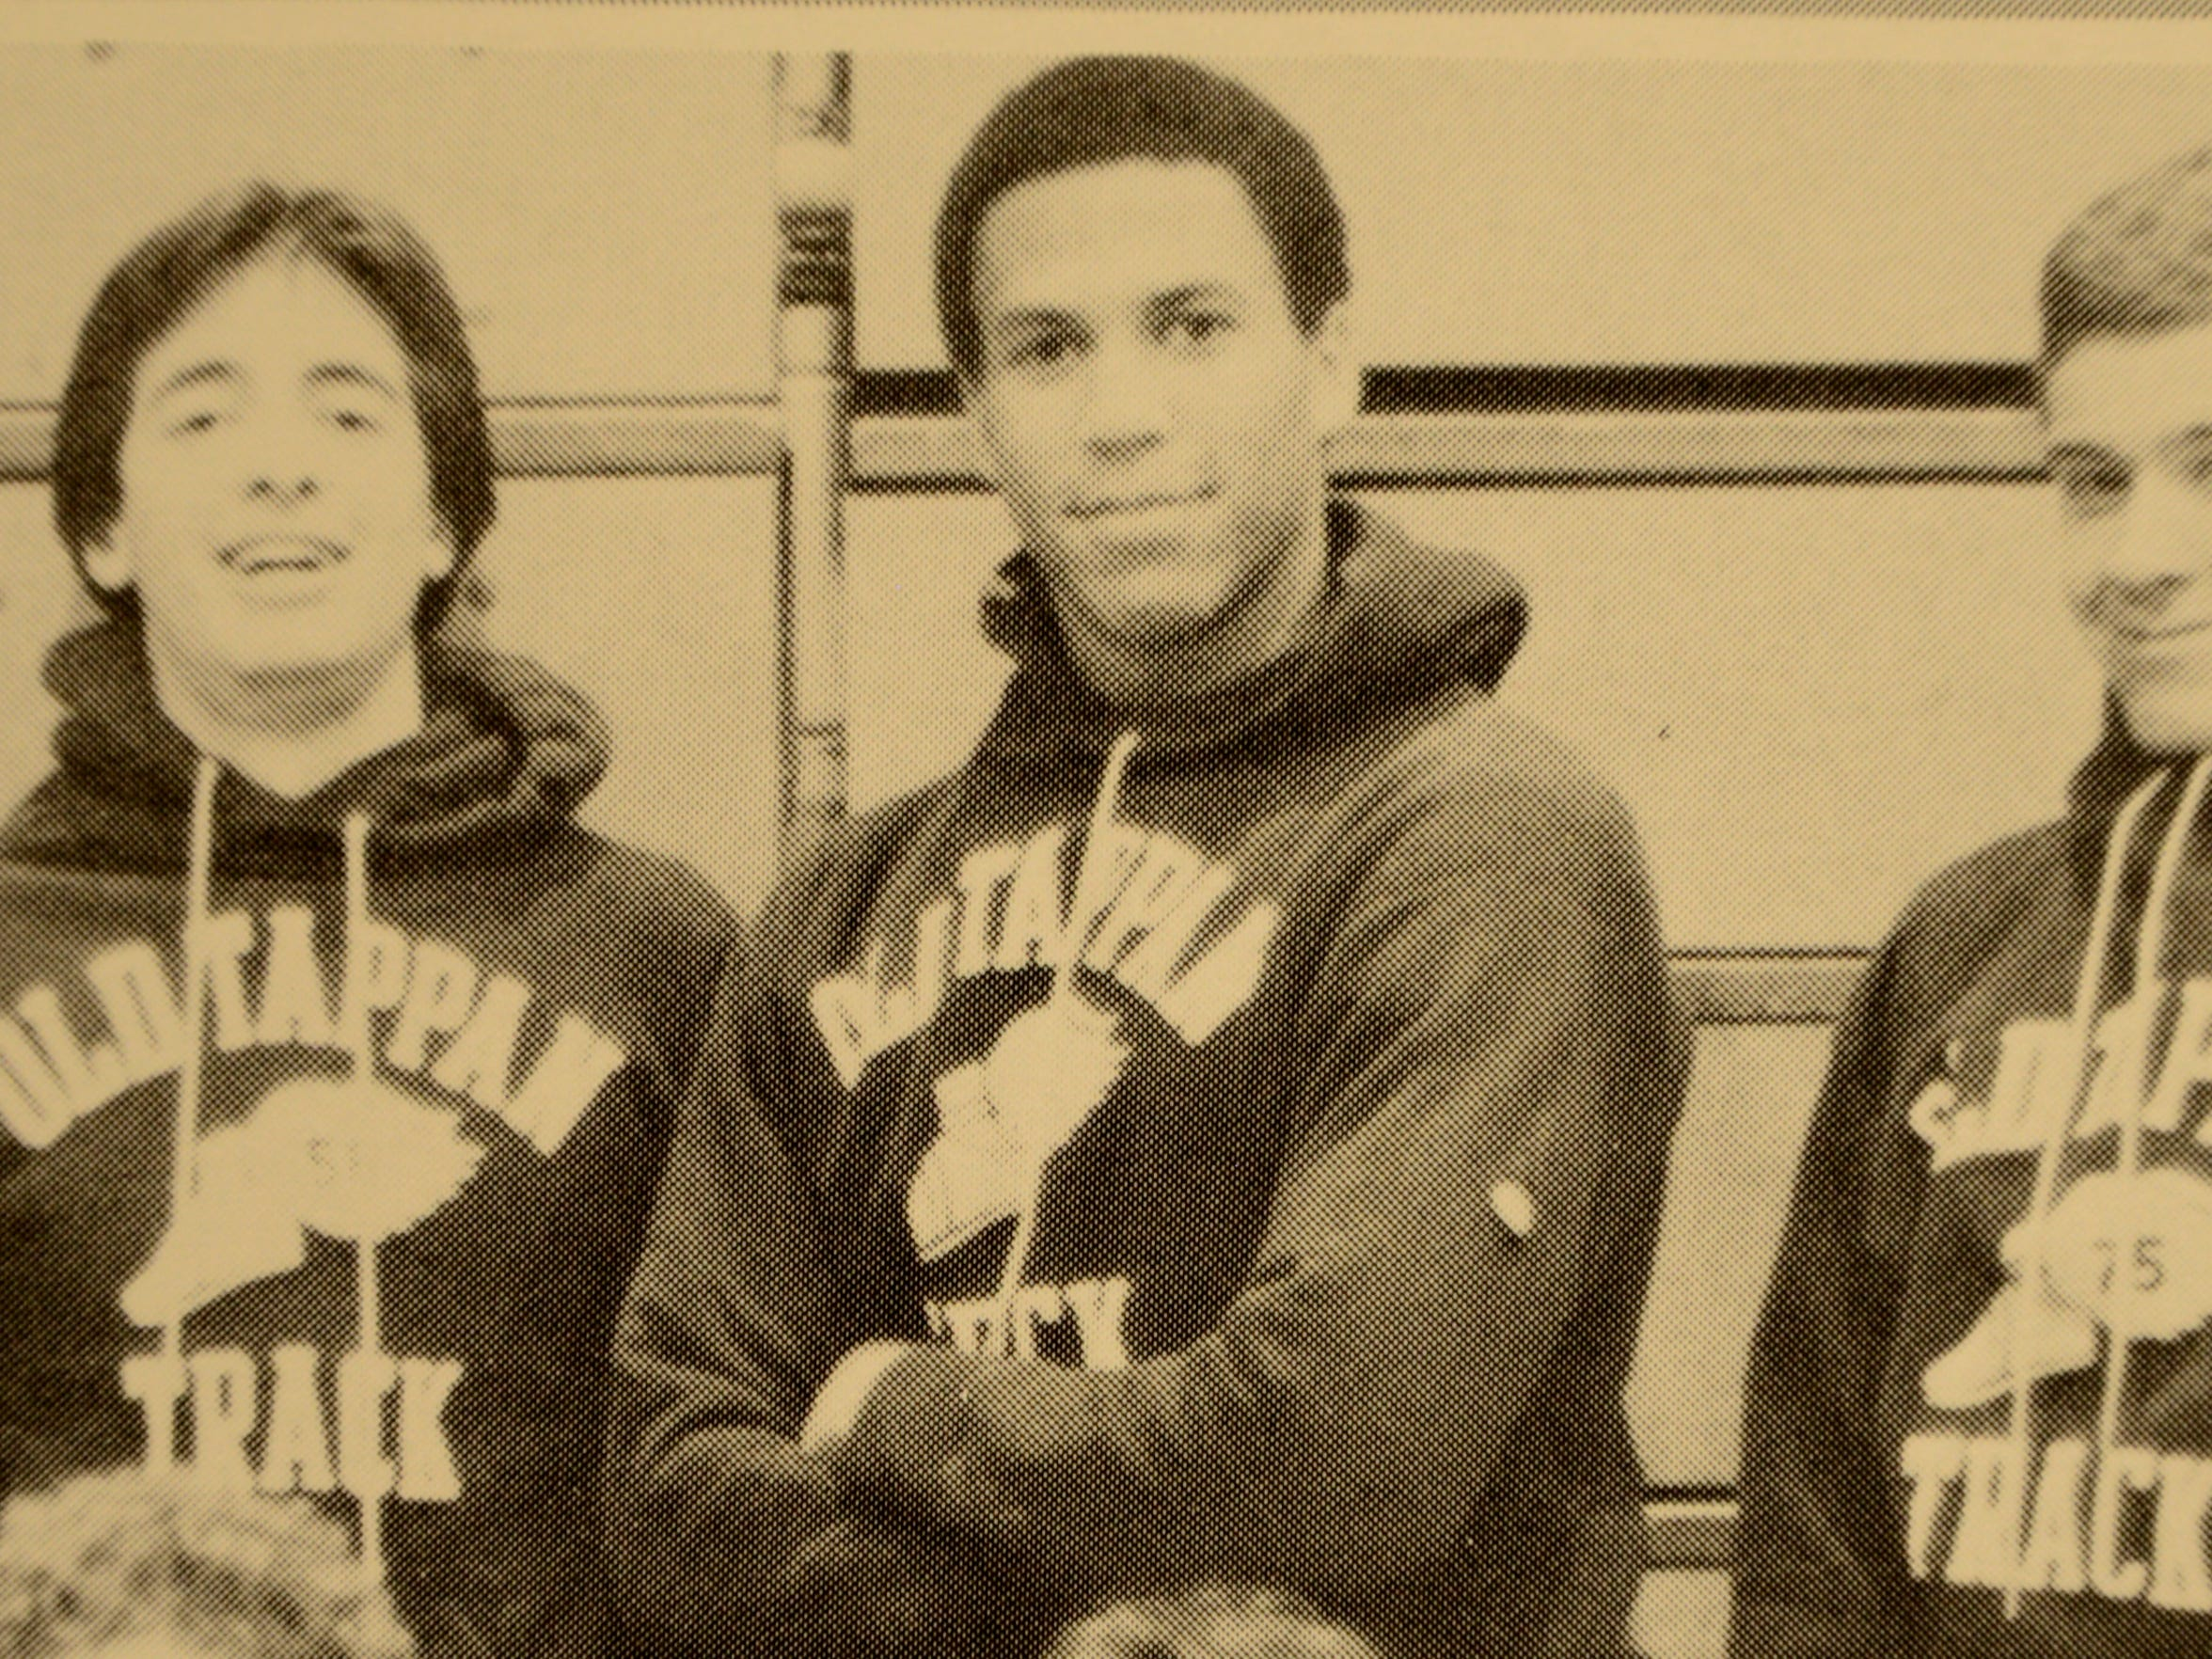 A photo from Cory Booker's 1987 yearbook.